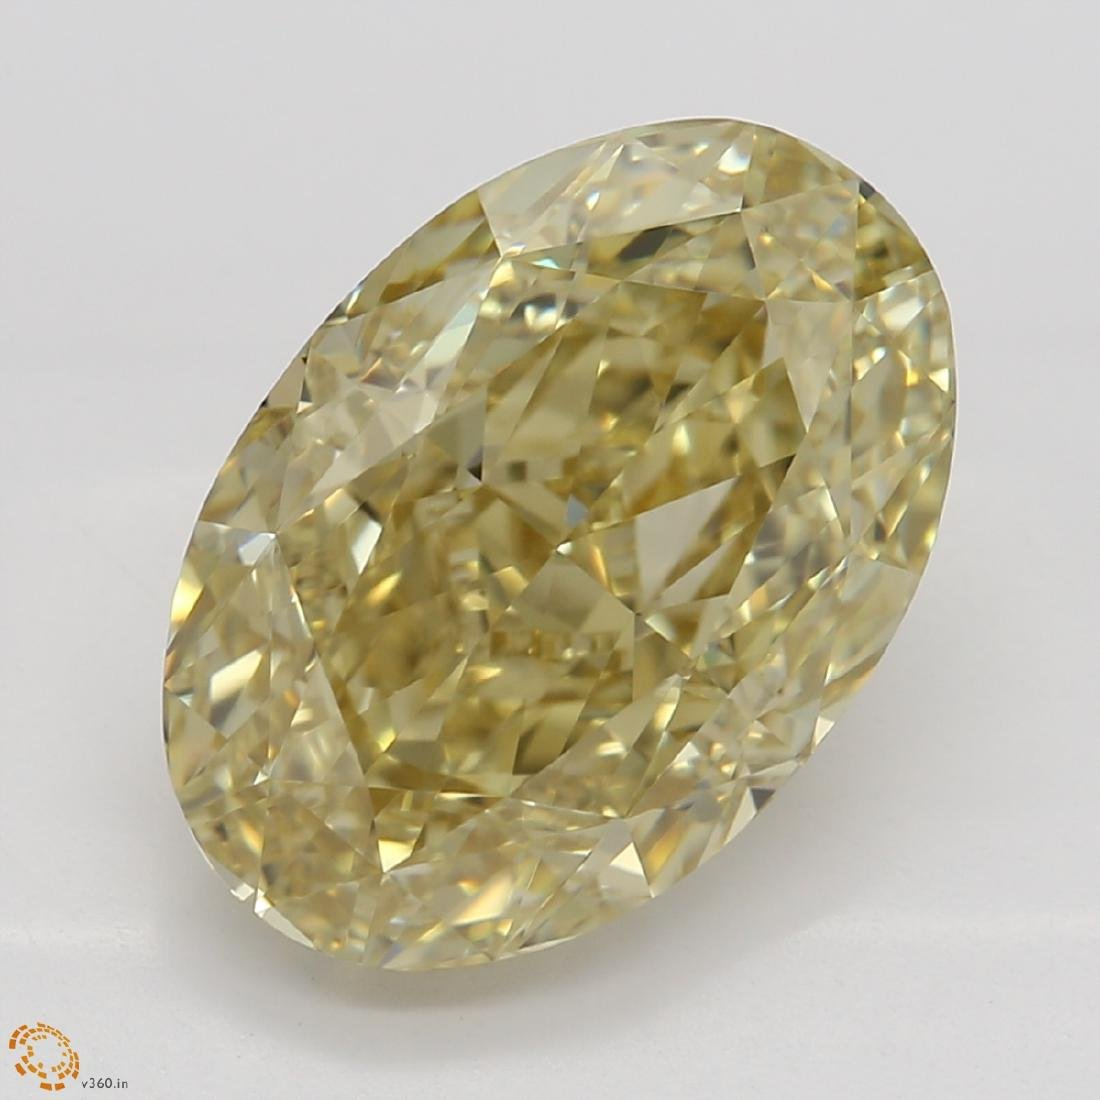 3.52 ct, Brown Yellow/IF, Oval cut Diamond